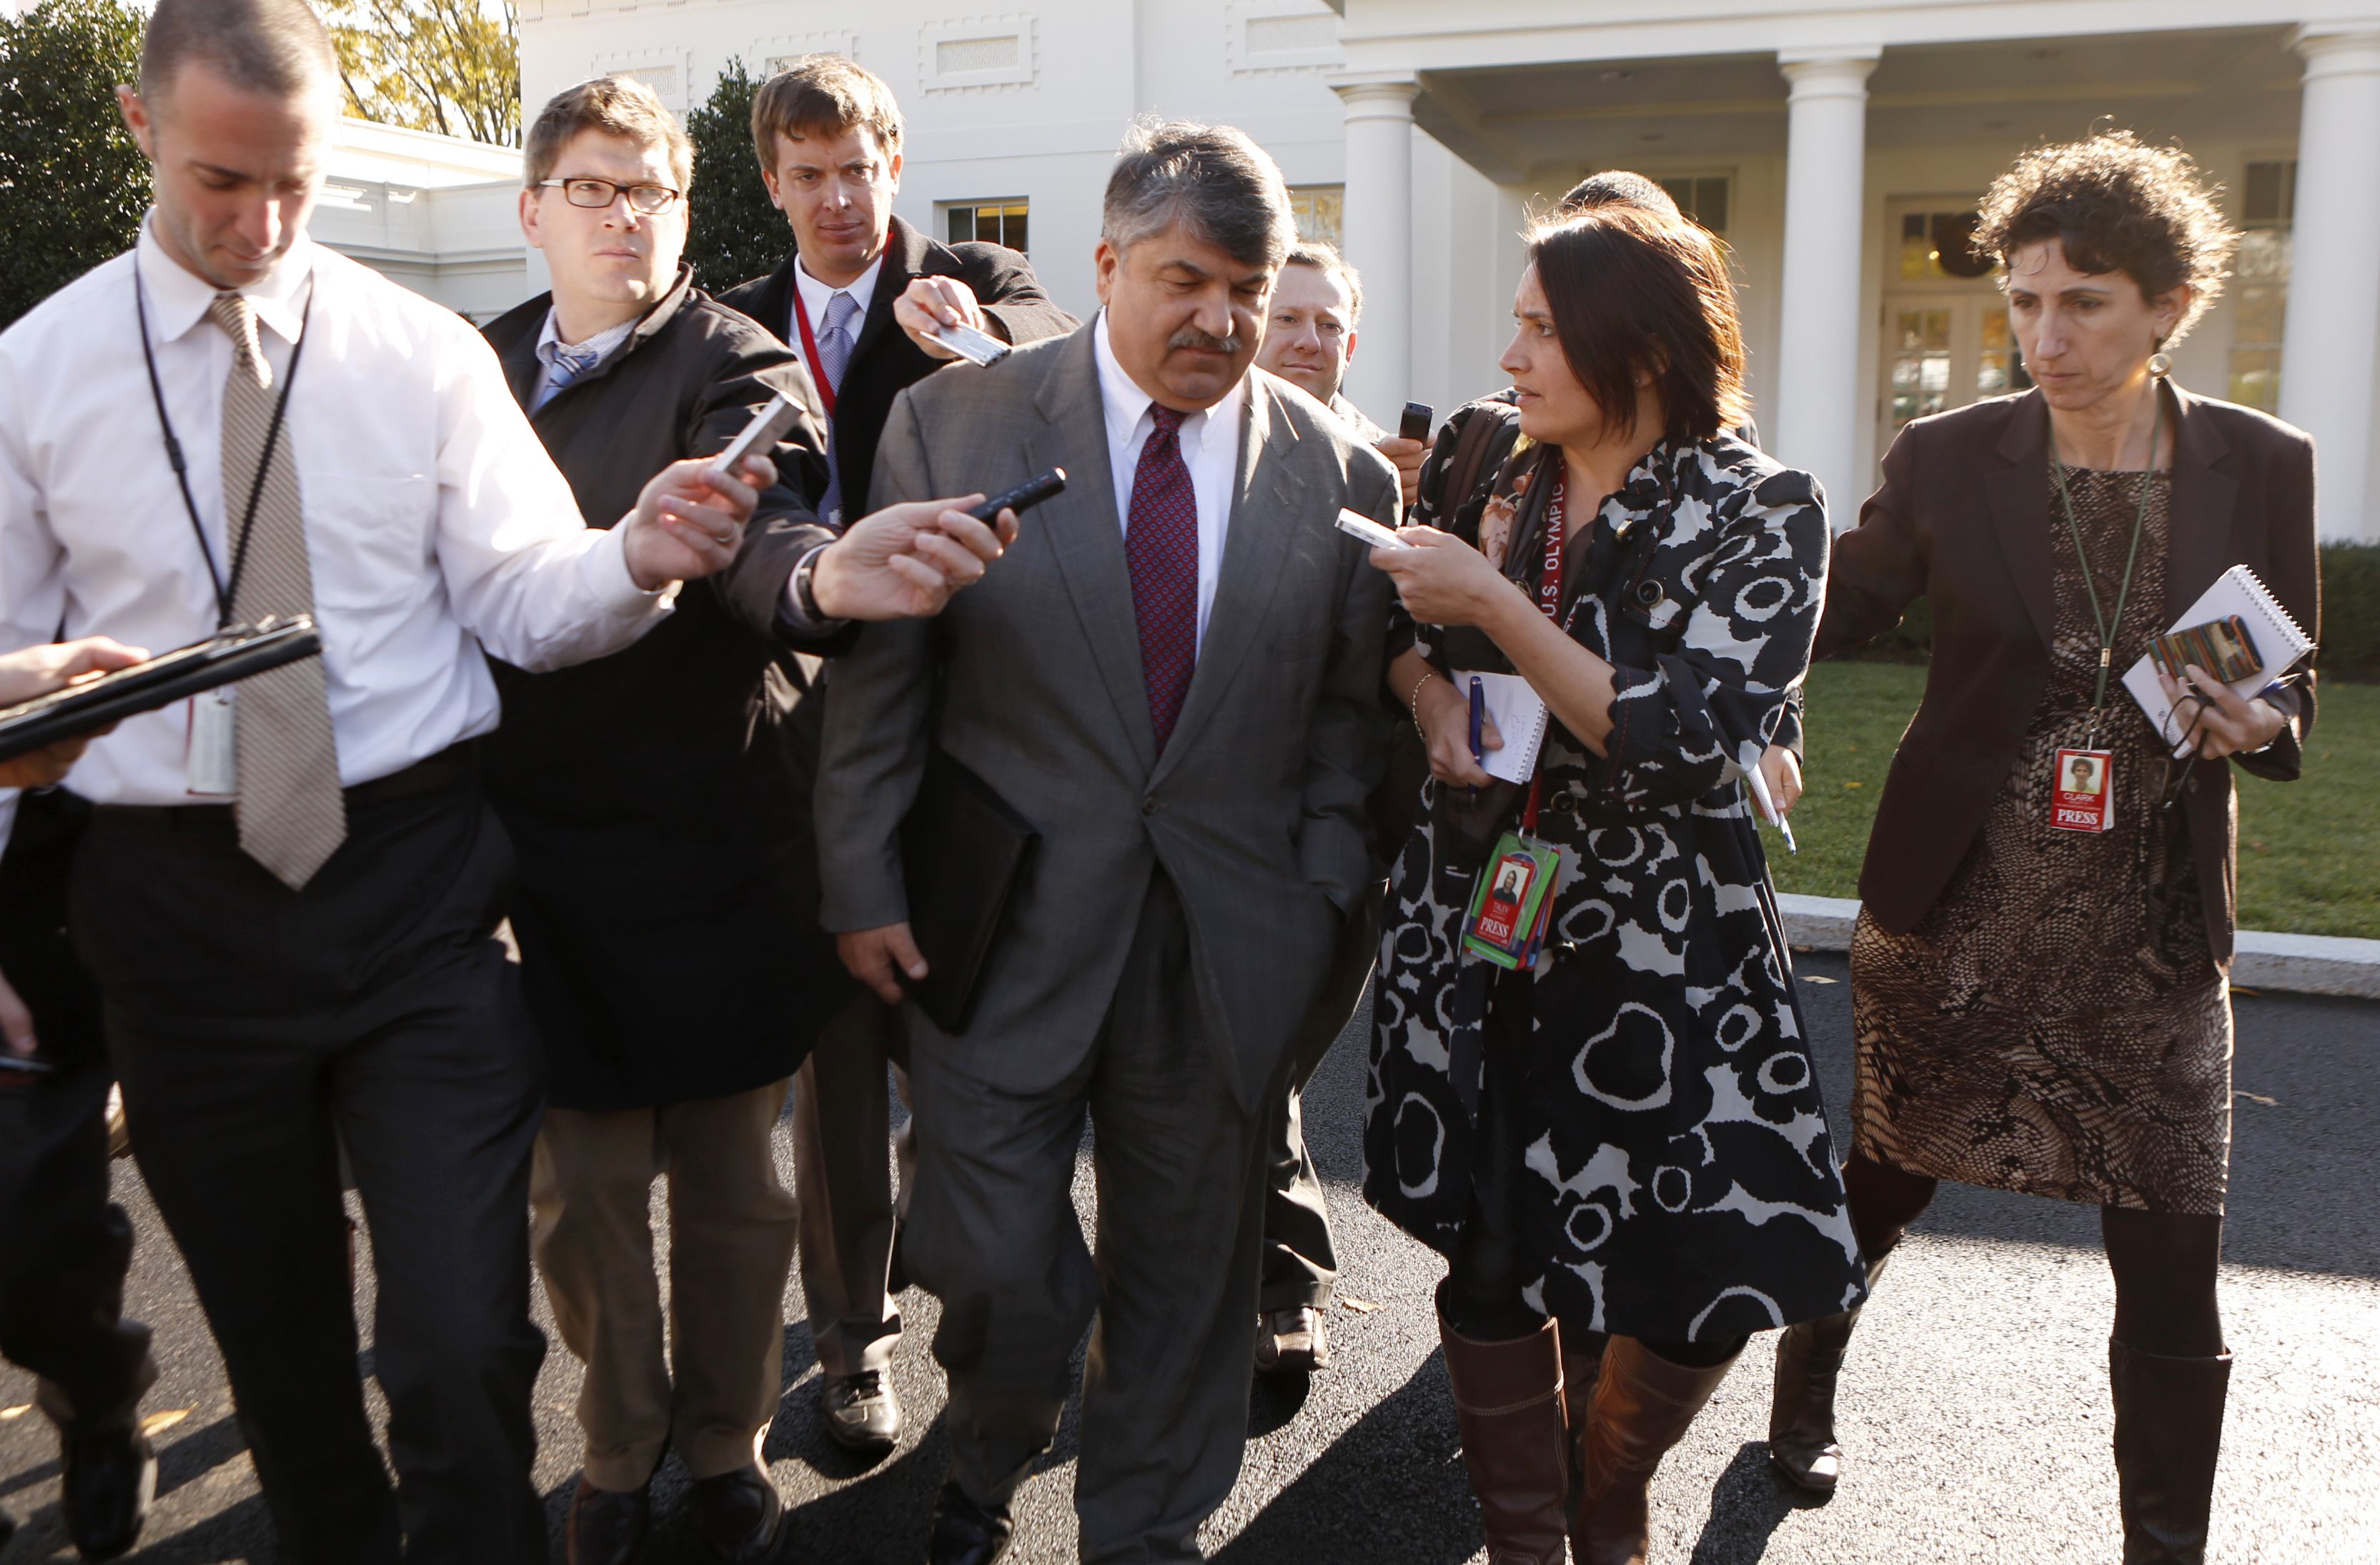 AFL-CIO President Richard Trumka is trailed by reporters as he departs the White House. (Kevin Lamarque/Reuters)